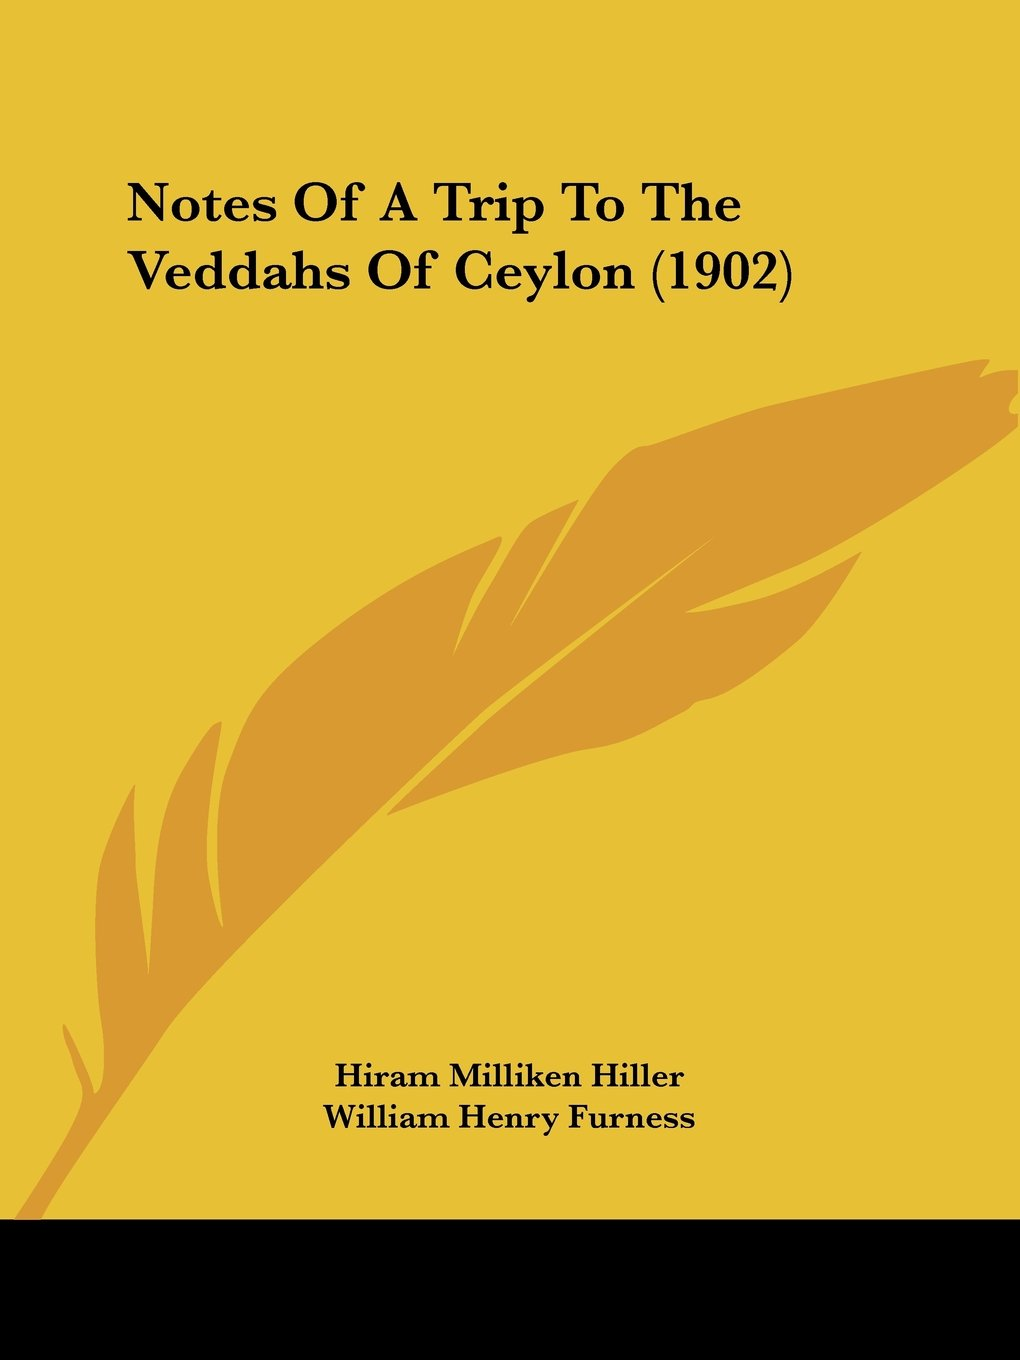 Download Notes Of A Trip To The Veddahs Of Ceylon (1902) PDF